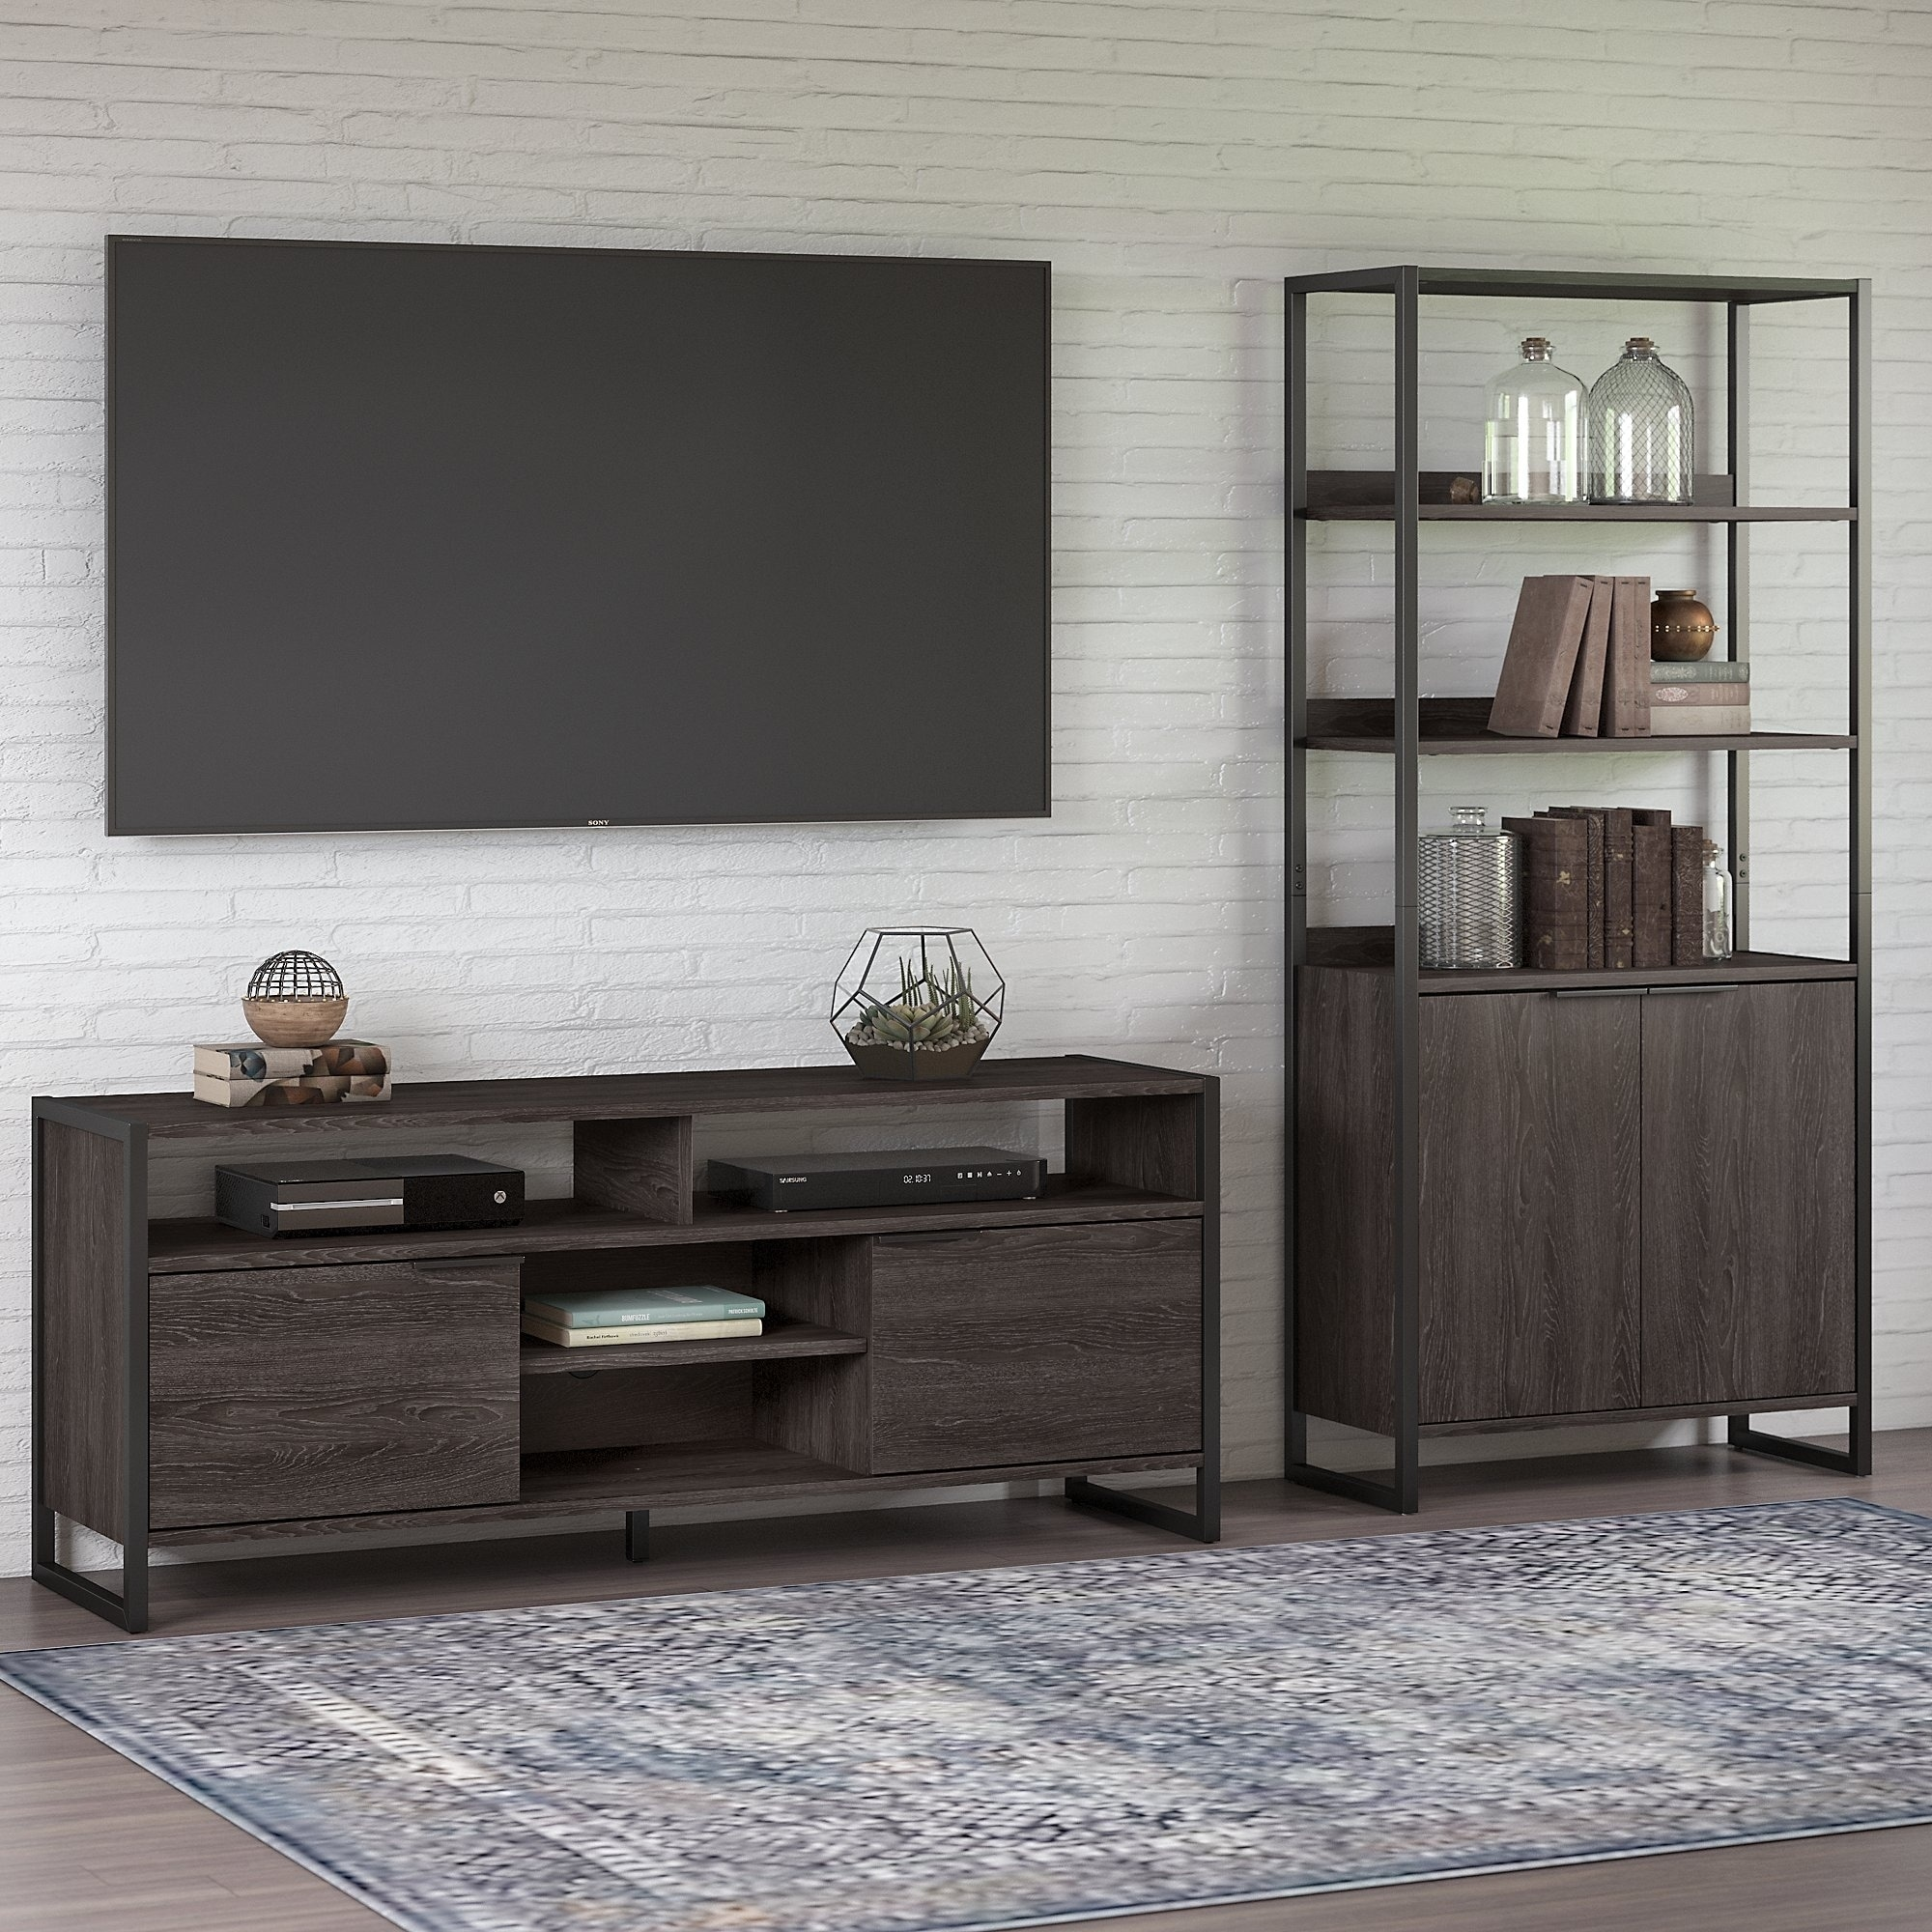 Atria Tv Stand With Bookcase From Kathy Ireland Home By Bush Furniture